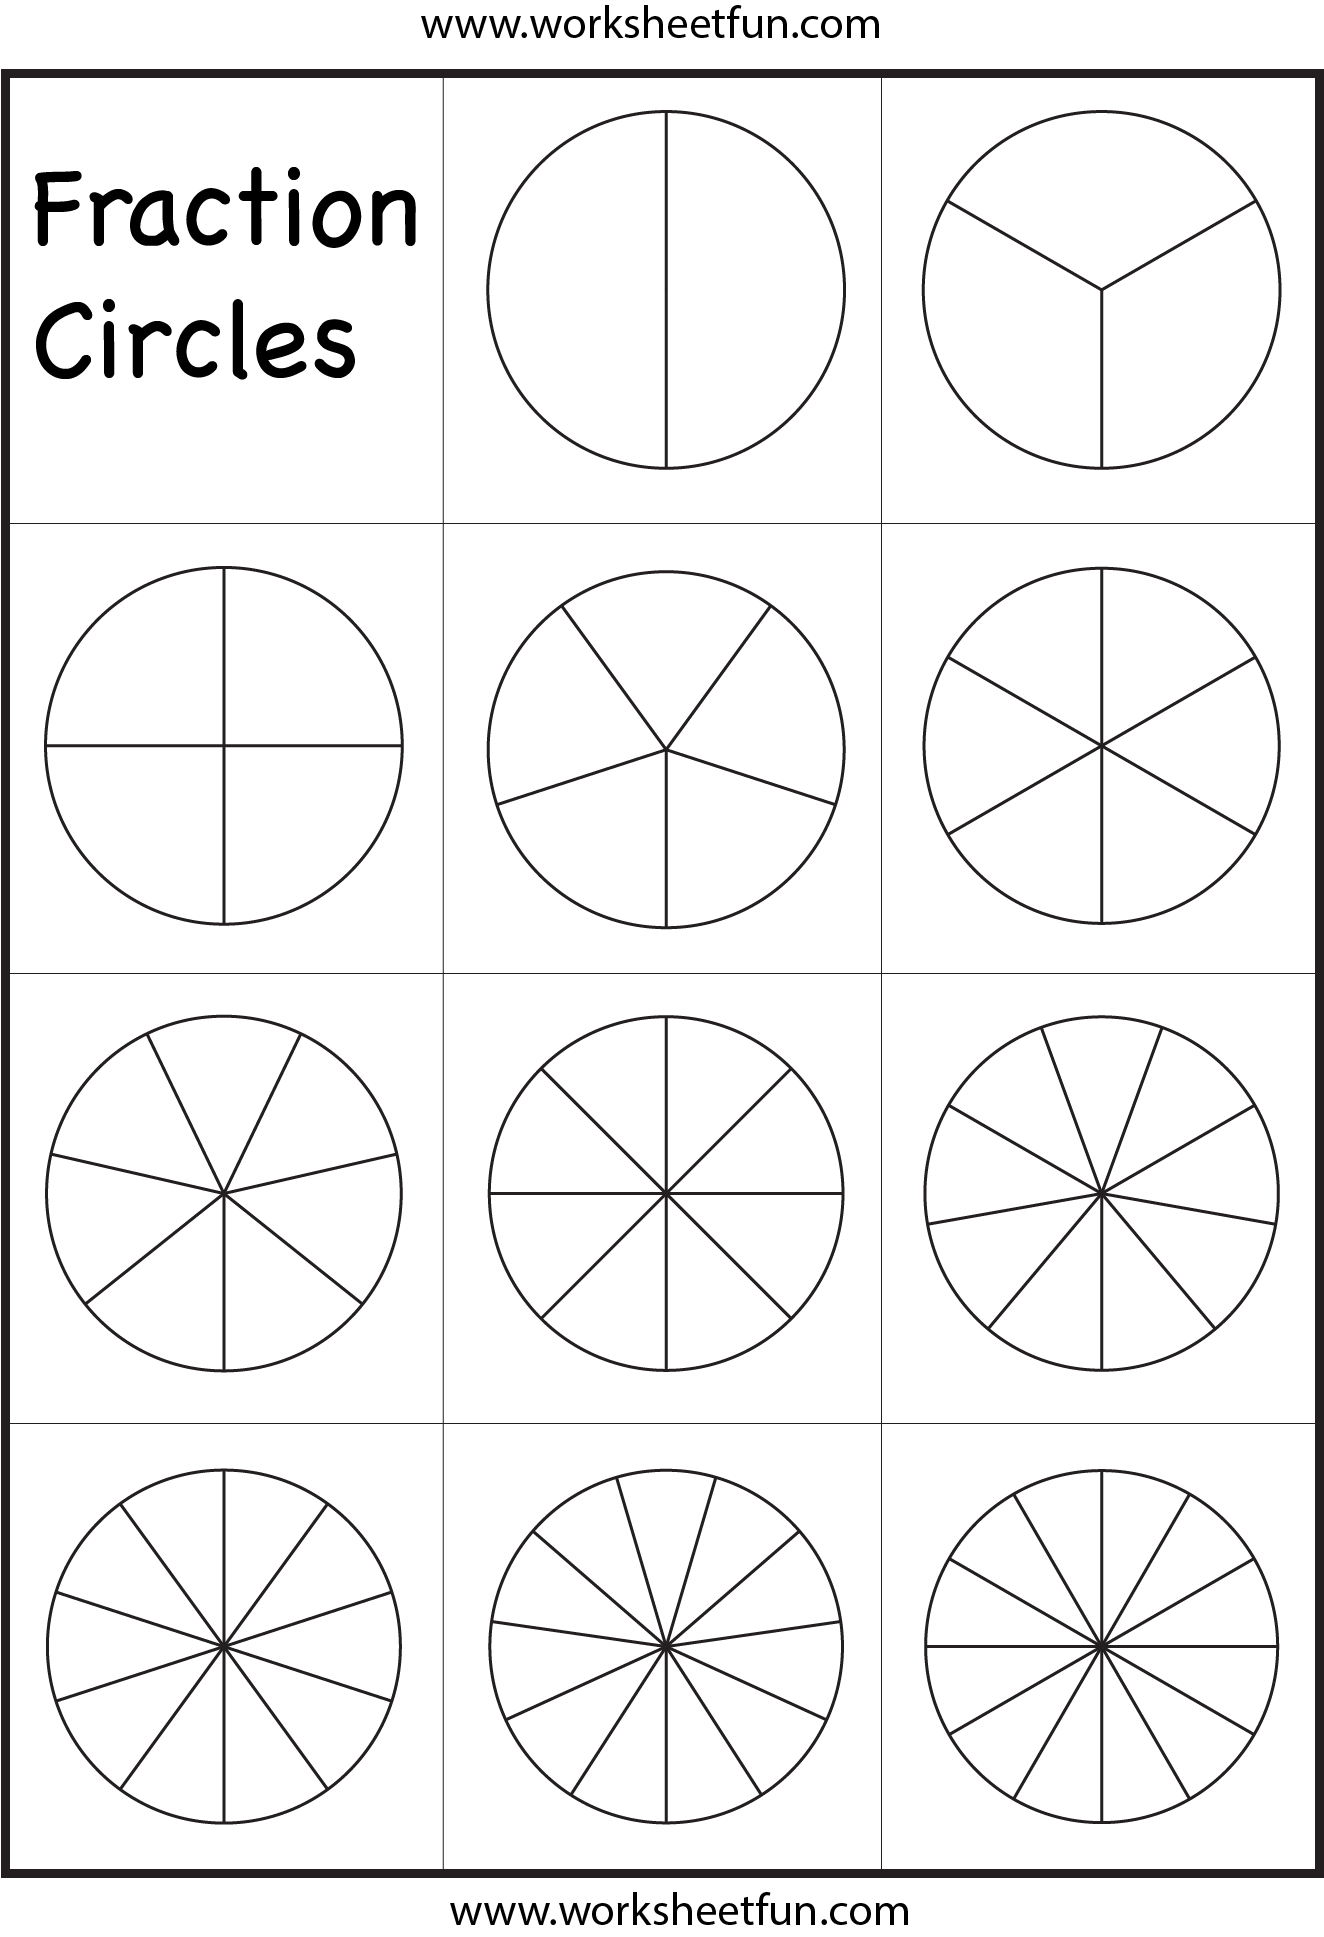 Fraction Circles Worksheet